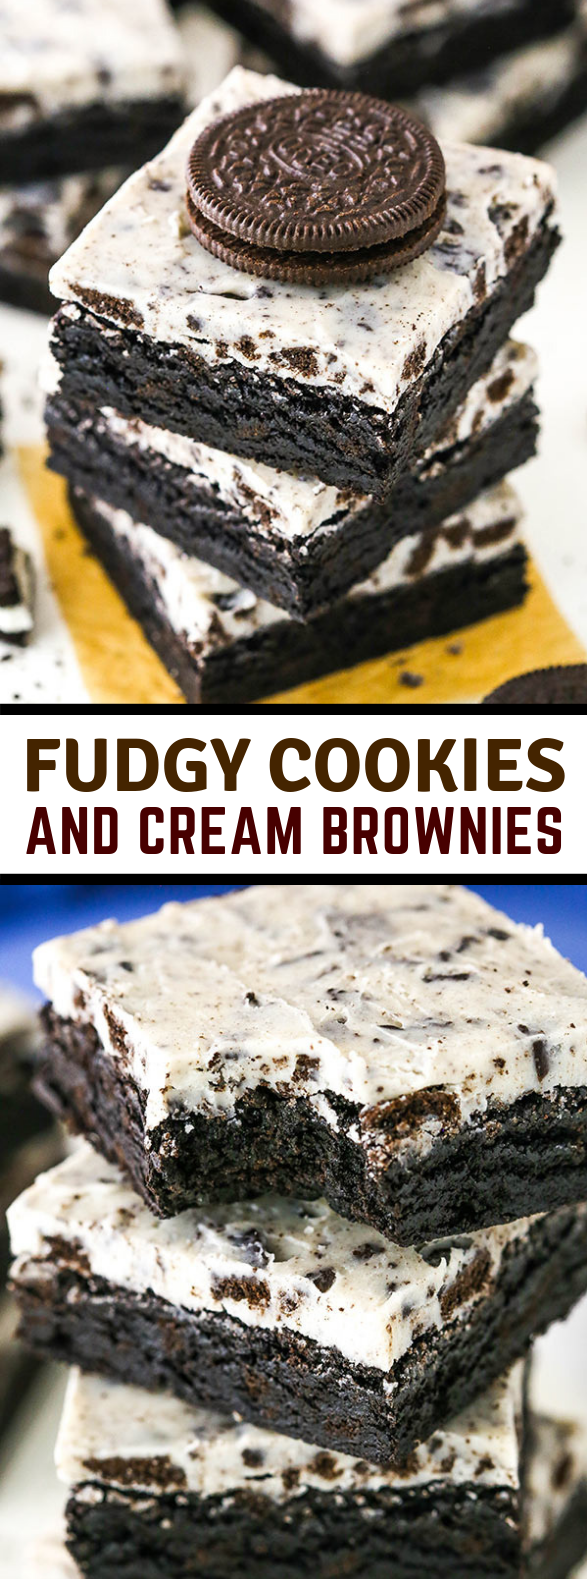 FUDGY COOKIES AND CREAM BROWNIES #desserts #cake #sweets #brownies #oreo